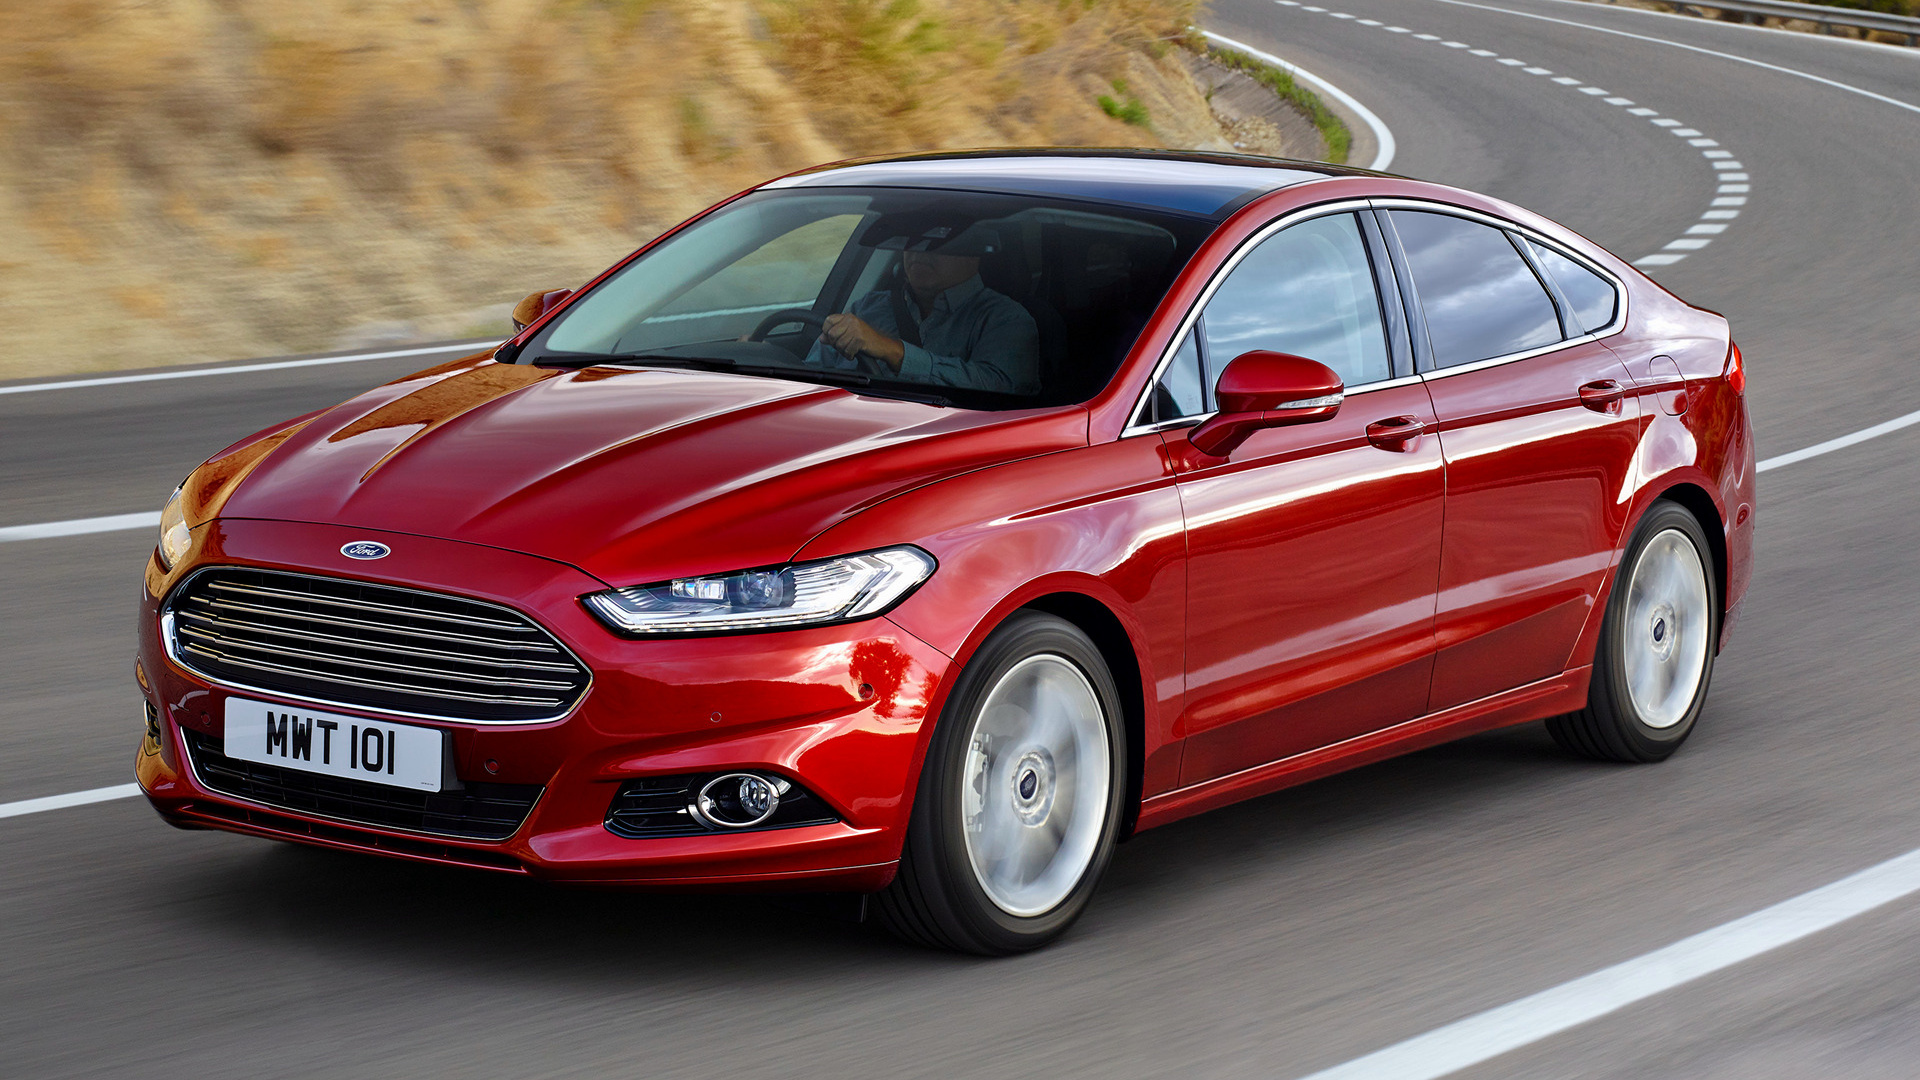 Ford Mondeo Hatchback 2014 Uk Wallpapers And Hd Images